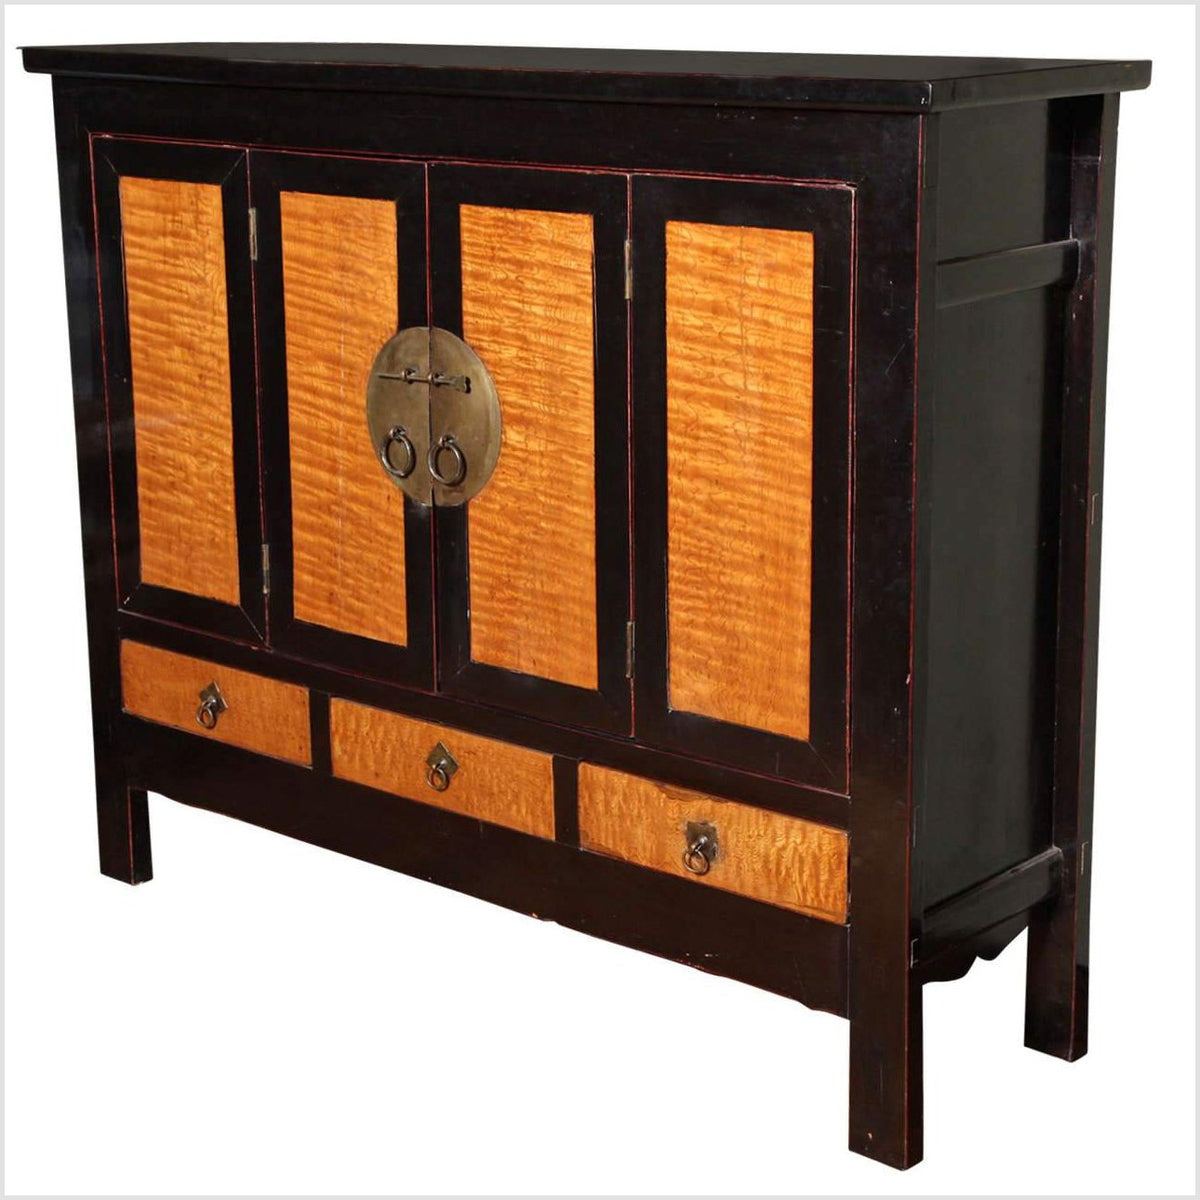 Dynasty Black Lacquer and Burl Wood Cabinet with Accordion Doors